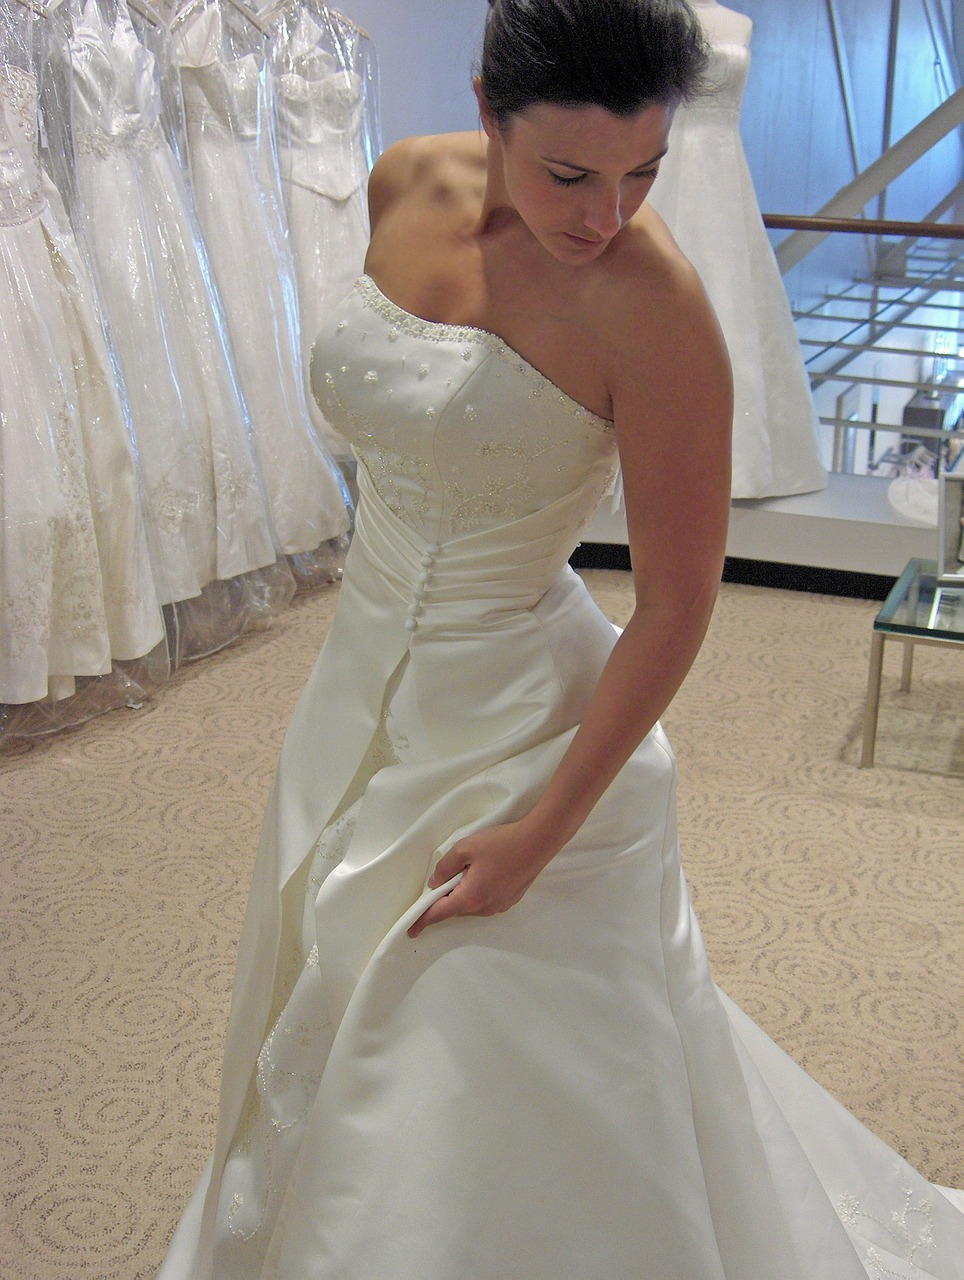 Pre-loved clothes are the trend these days for wedding gowns.